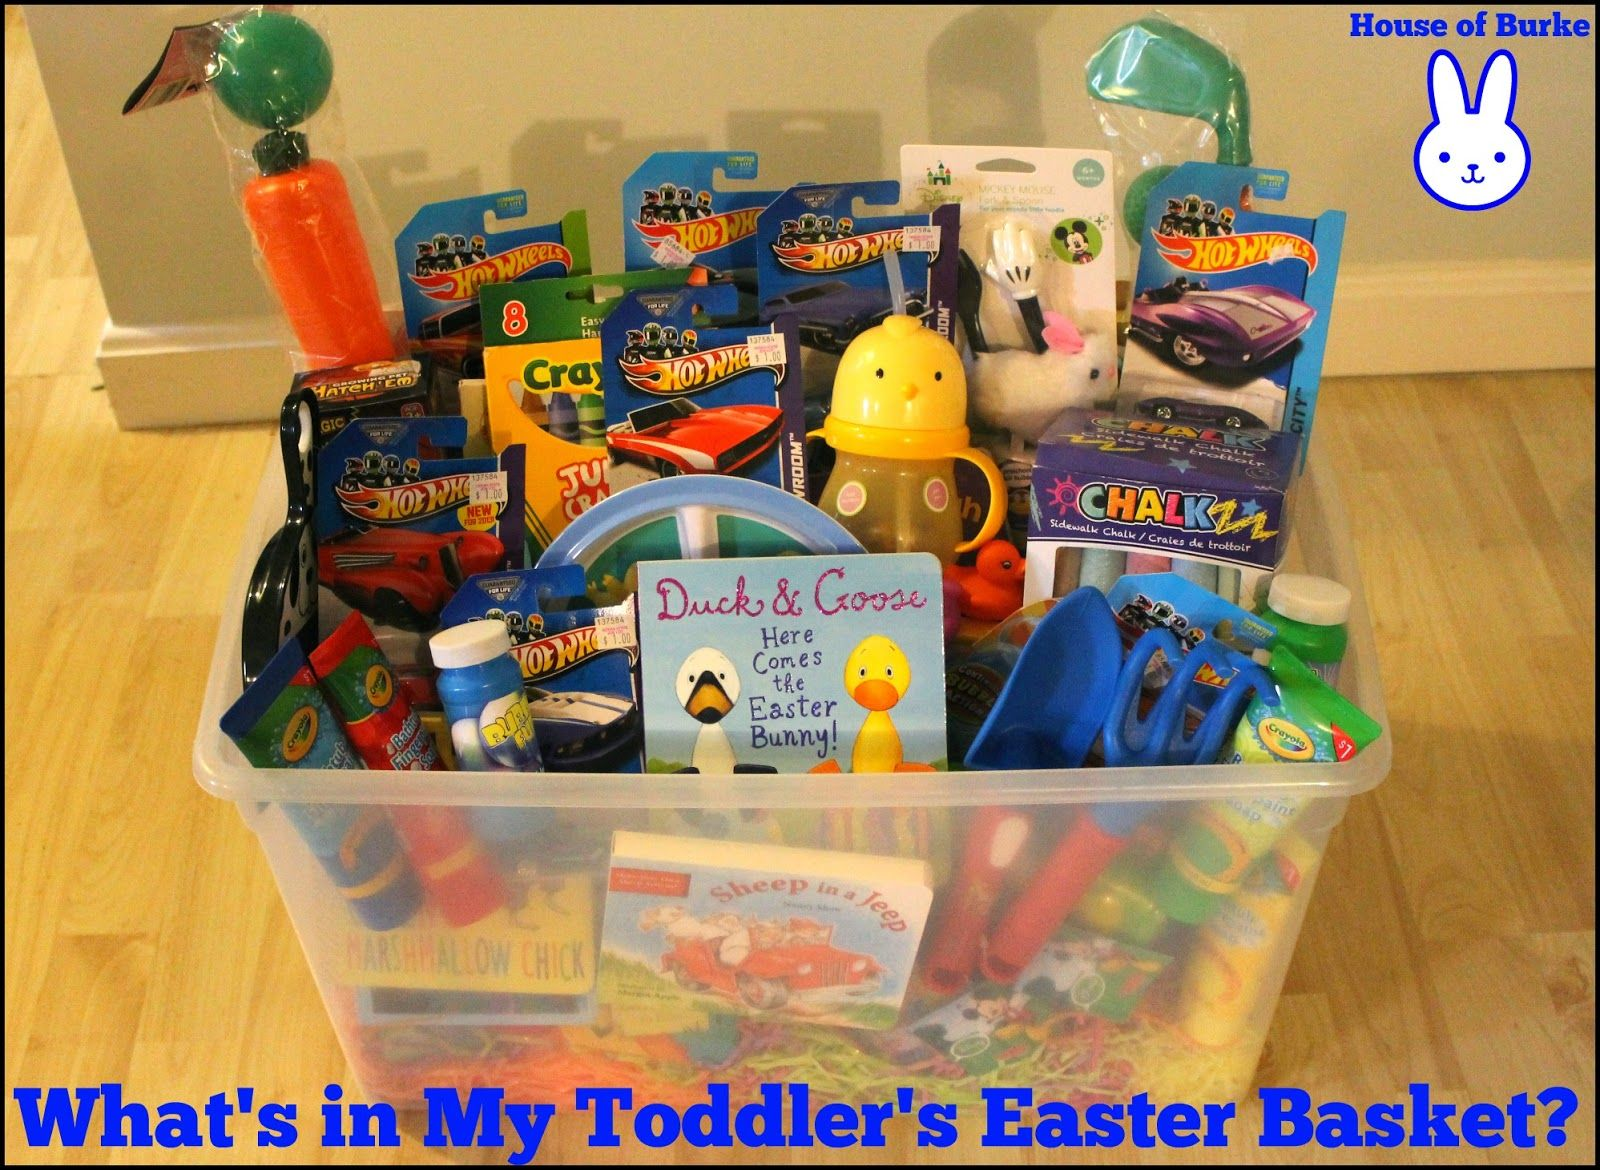 Whats in my toddlers easter basket easter baskets easter and whats in my toddlers easter basket negle Image collections